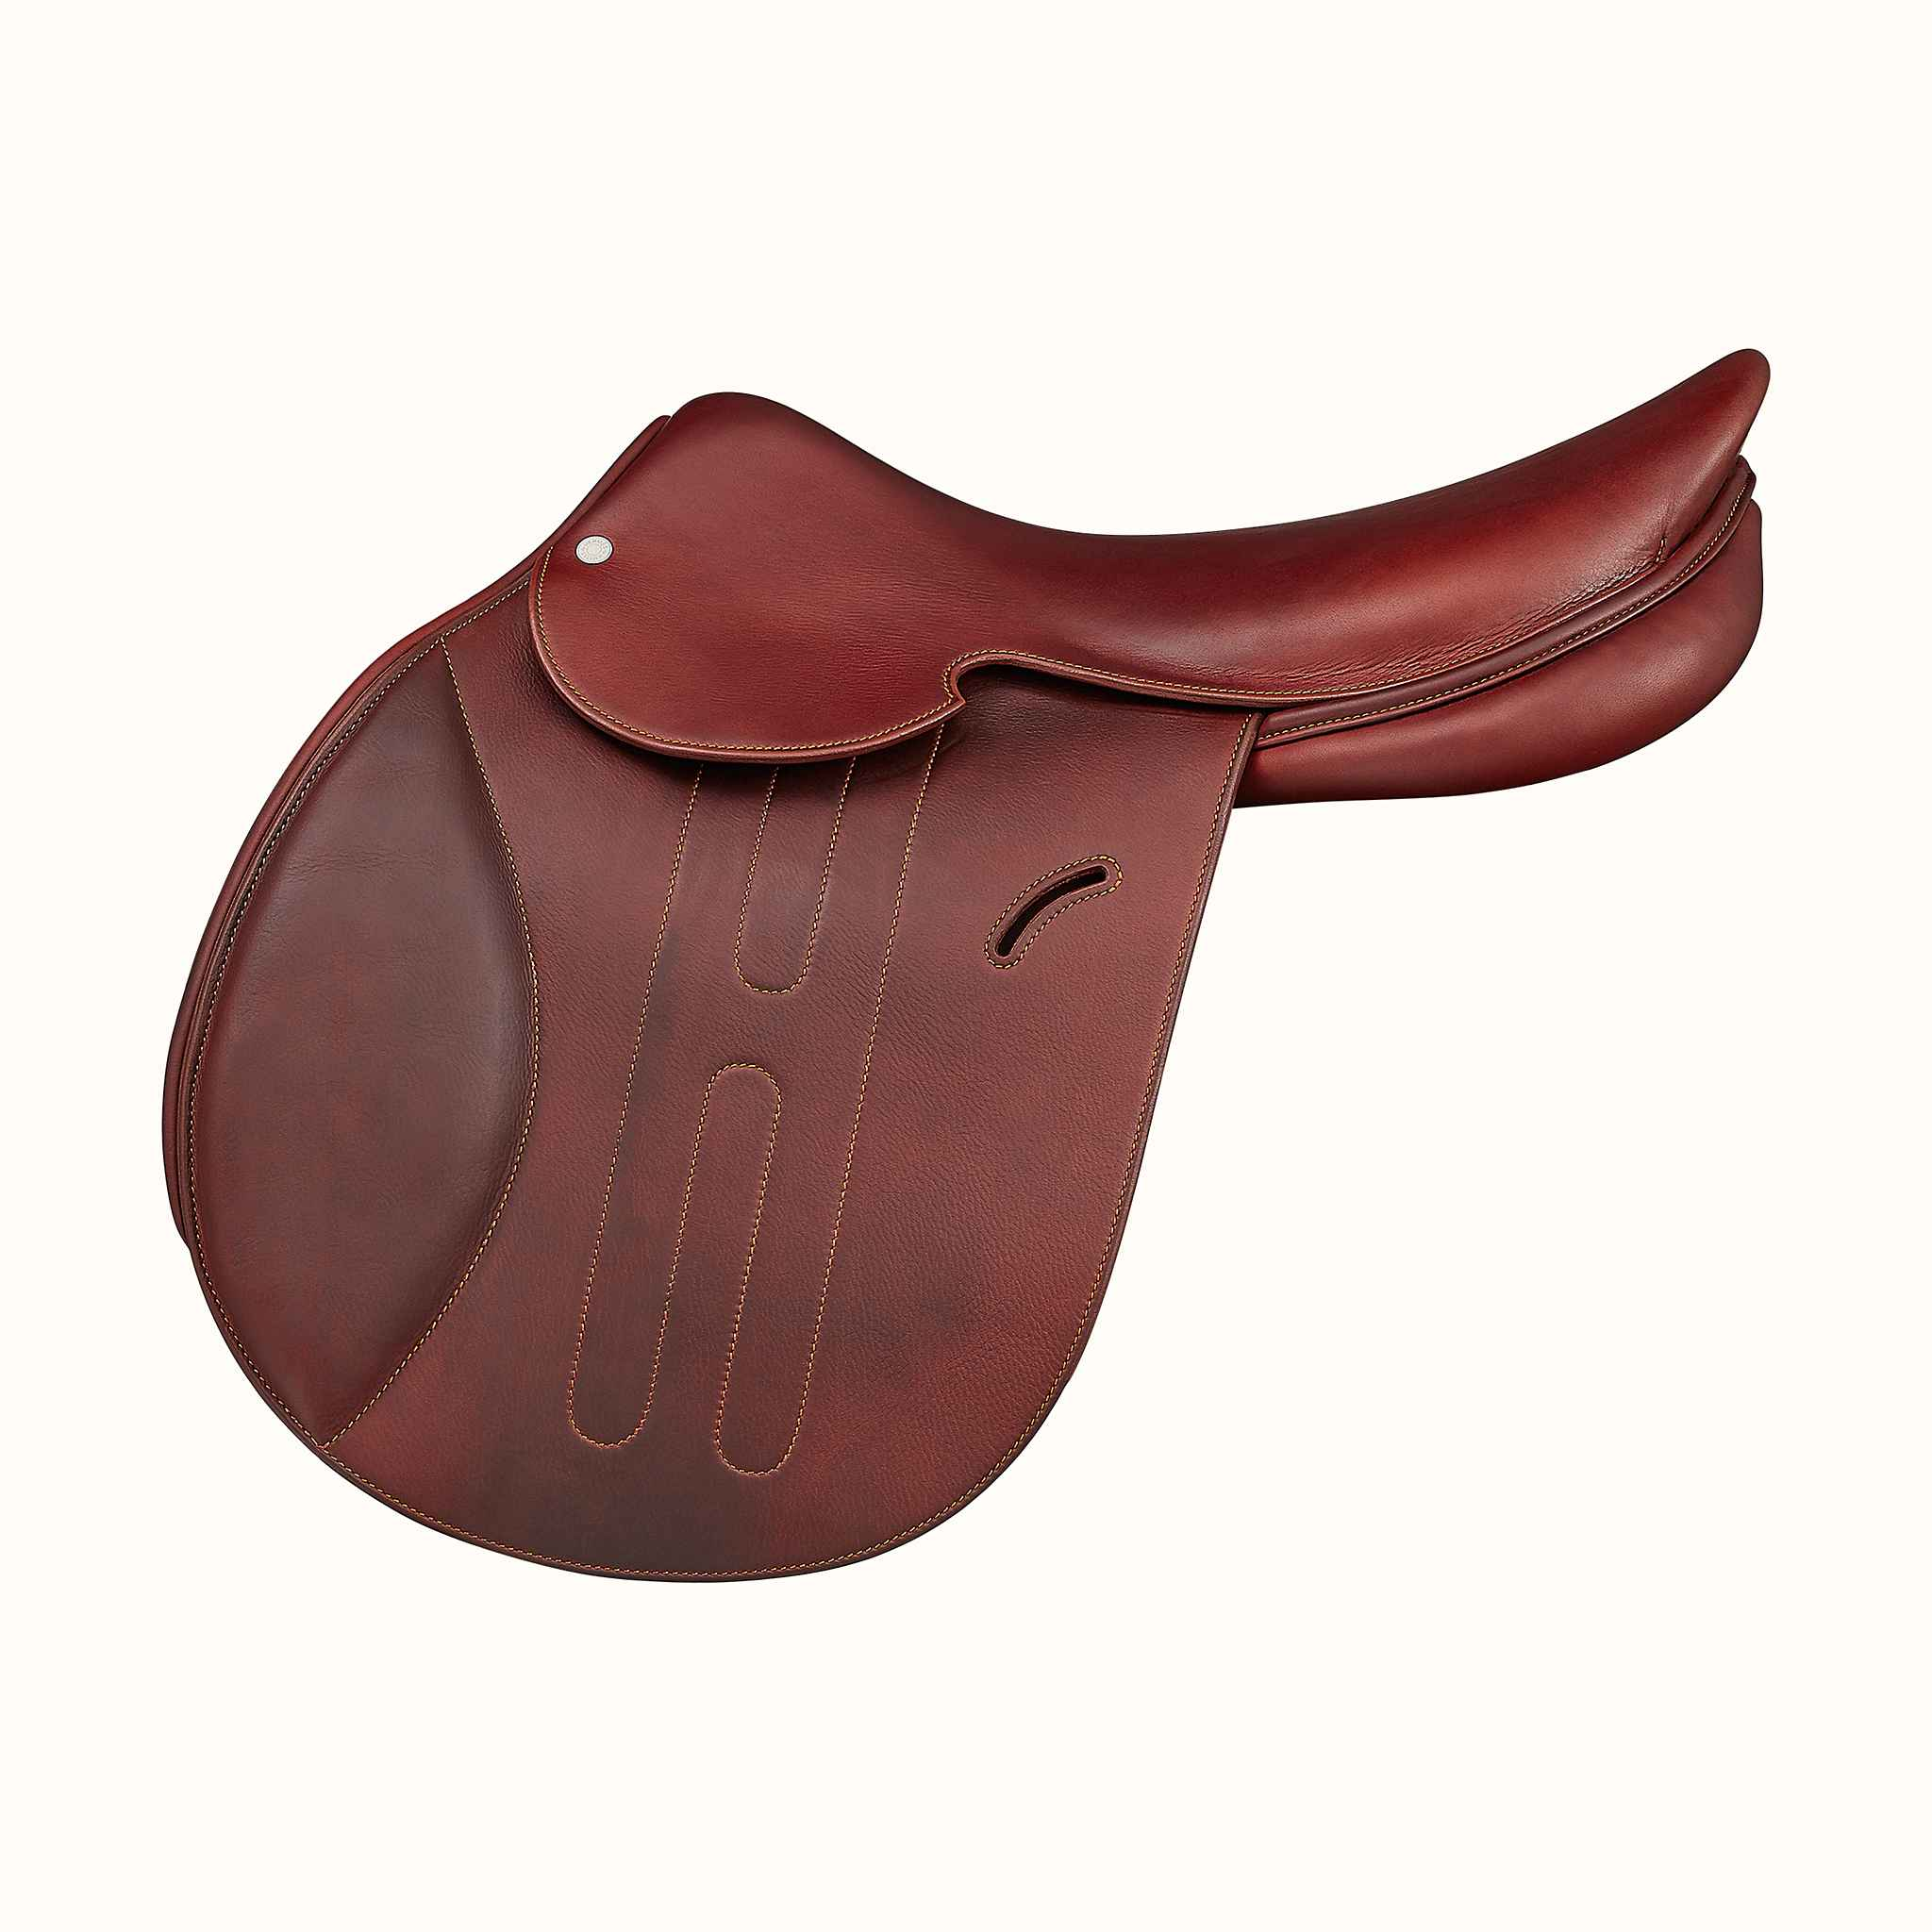 hermes-cavale-ii-jumping-saddle--068623CK21-side-1-300-0-2048-2048-q40_b.jpg